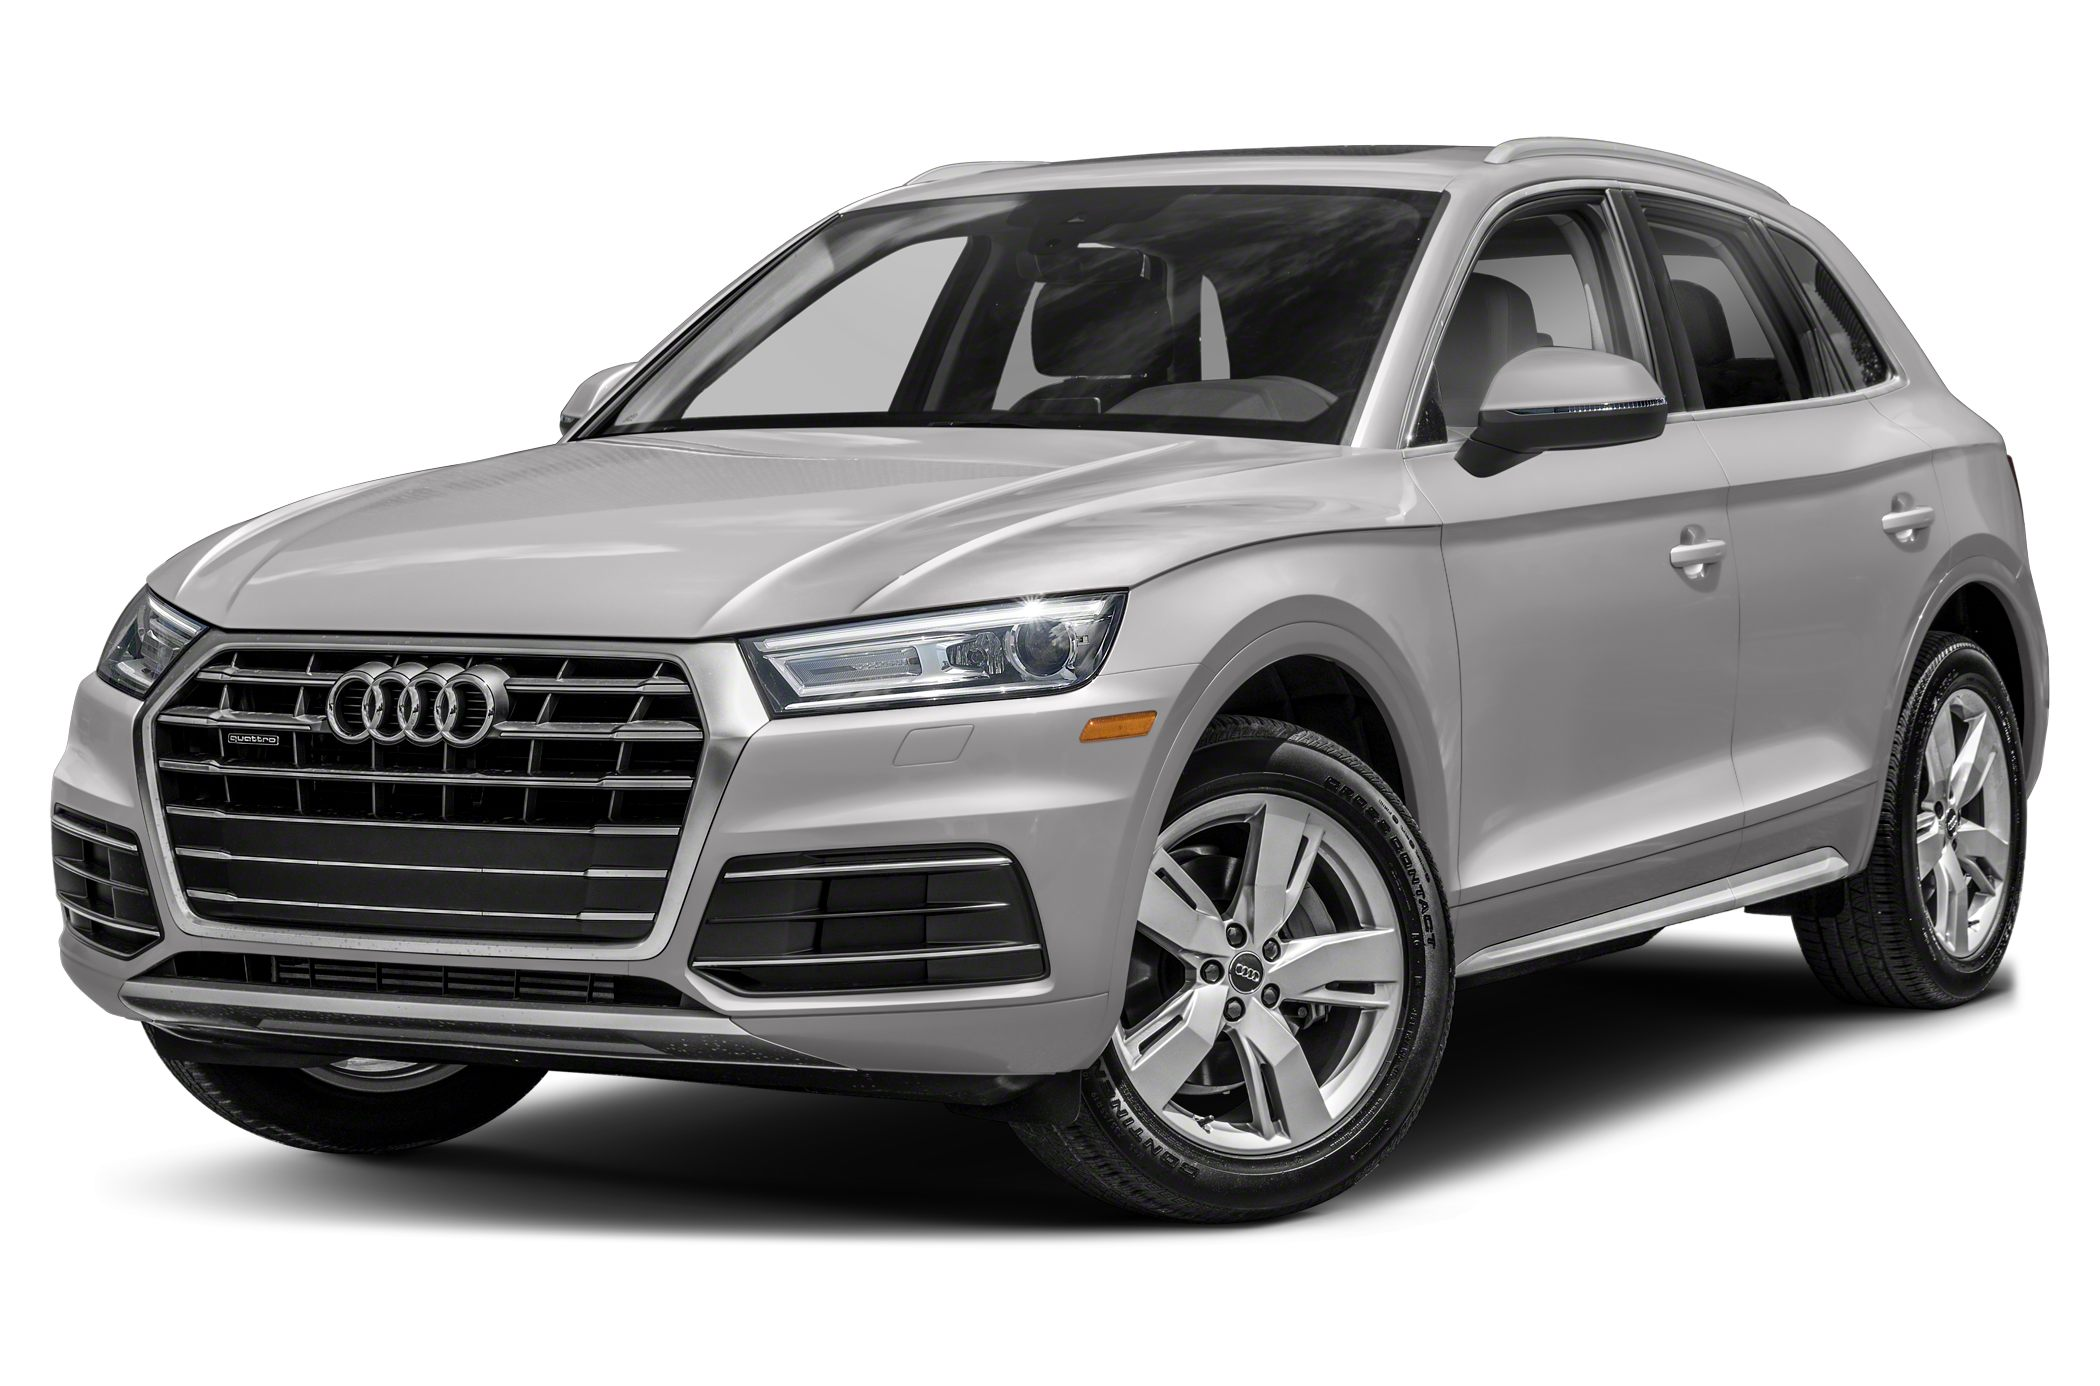 84 New 2019 Audi Q5 Suv Wallpaper